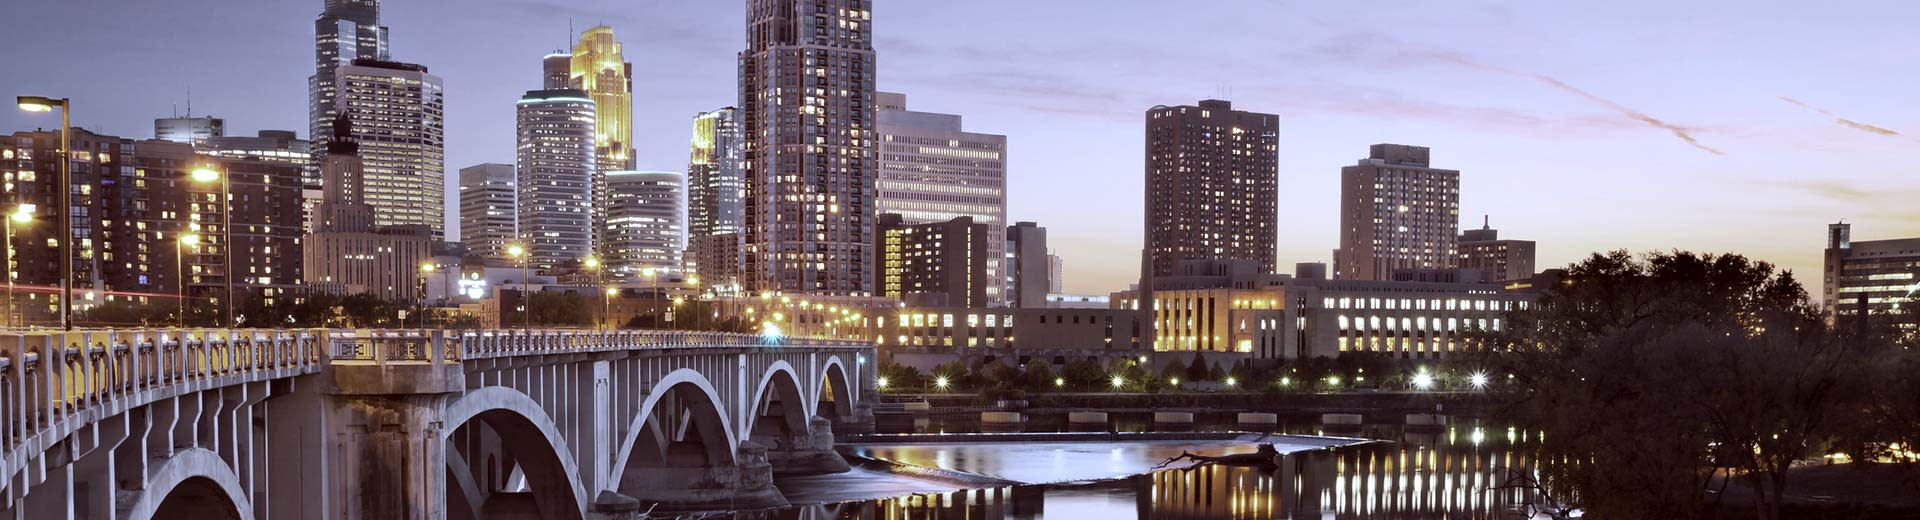 A bridge and high-rise skyscrapers light up the sky above Minneapolis